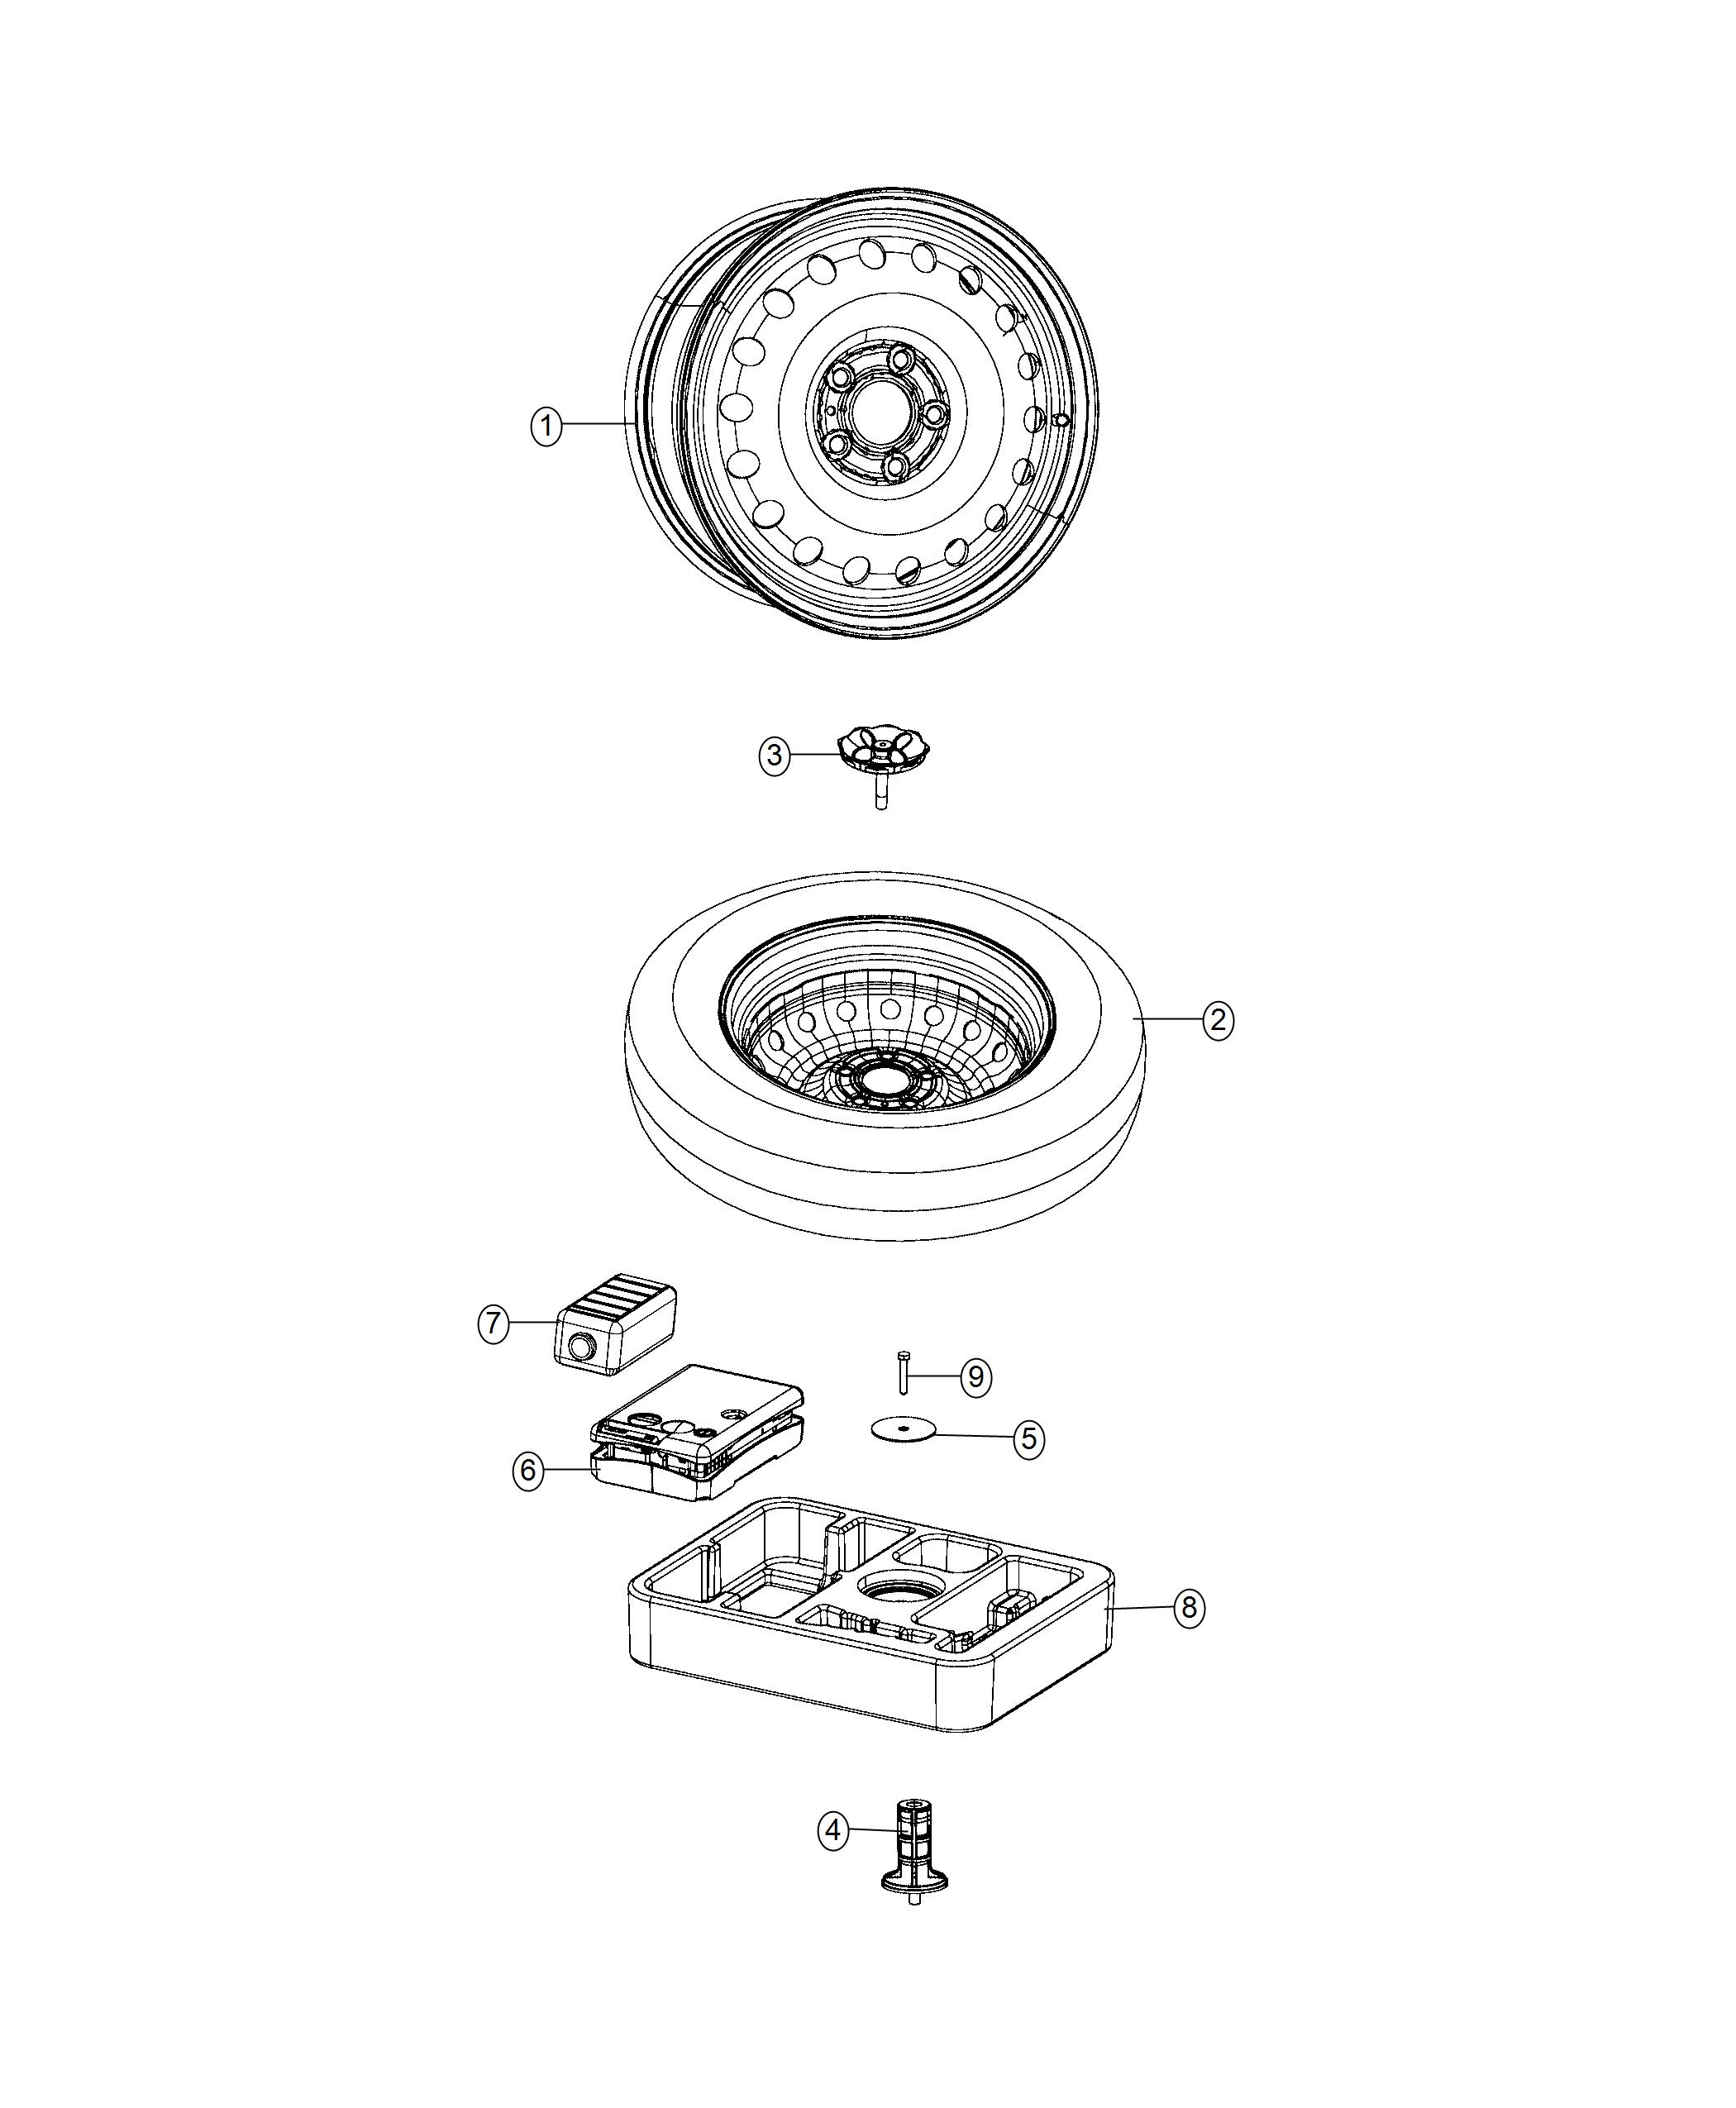 Jeep Compass Wheel Steel Tire Spare Size